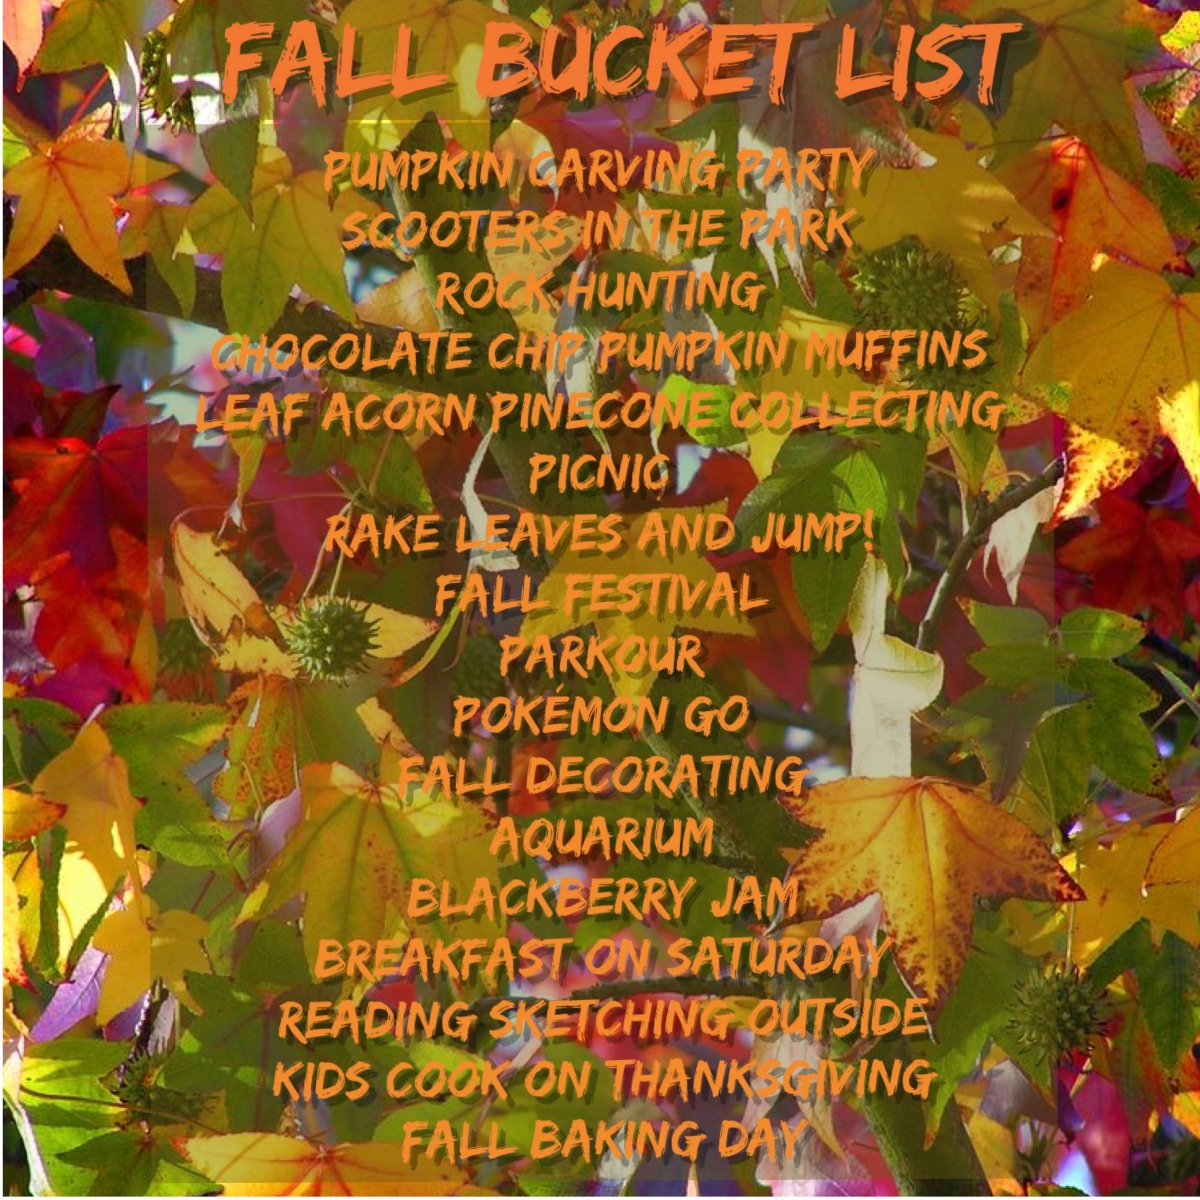 Fall Bucket List Update #2